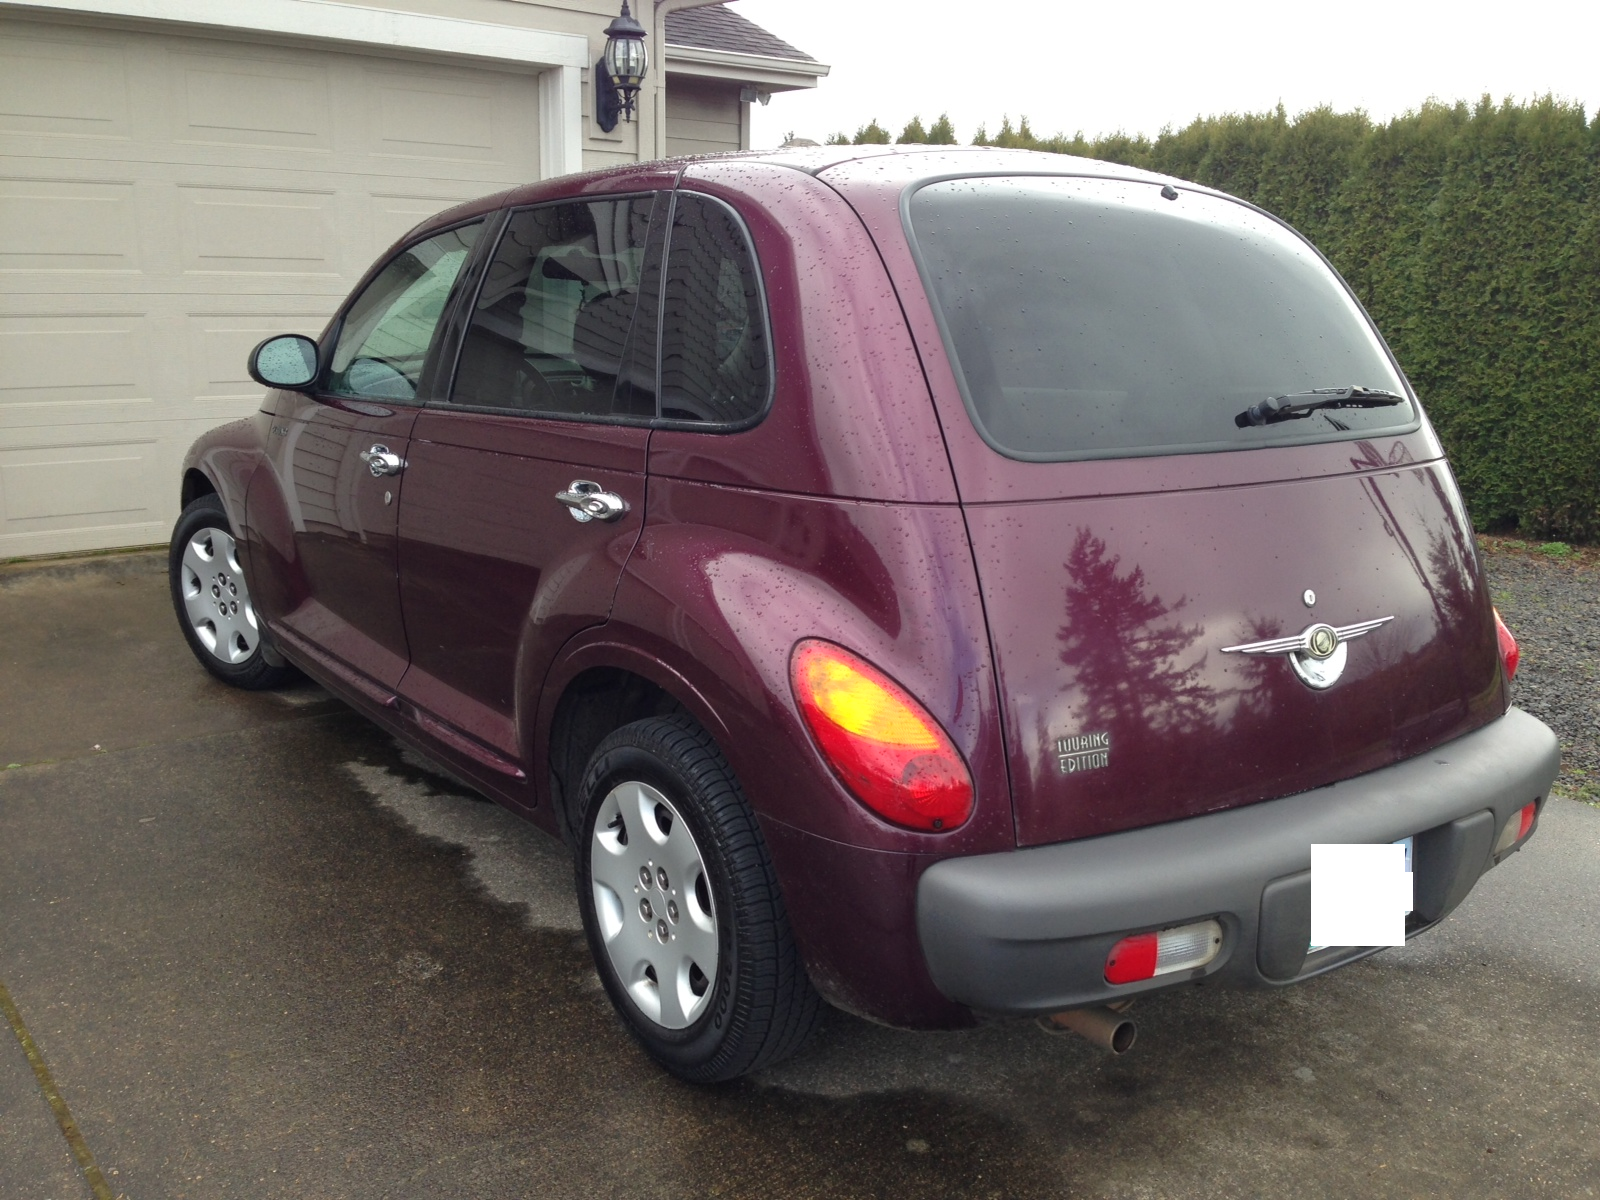 2003 chrysler pt cruiser specs new and used car listings. Black Bedroom Furniture Sets. Home Design Ideas